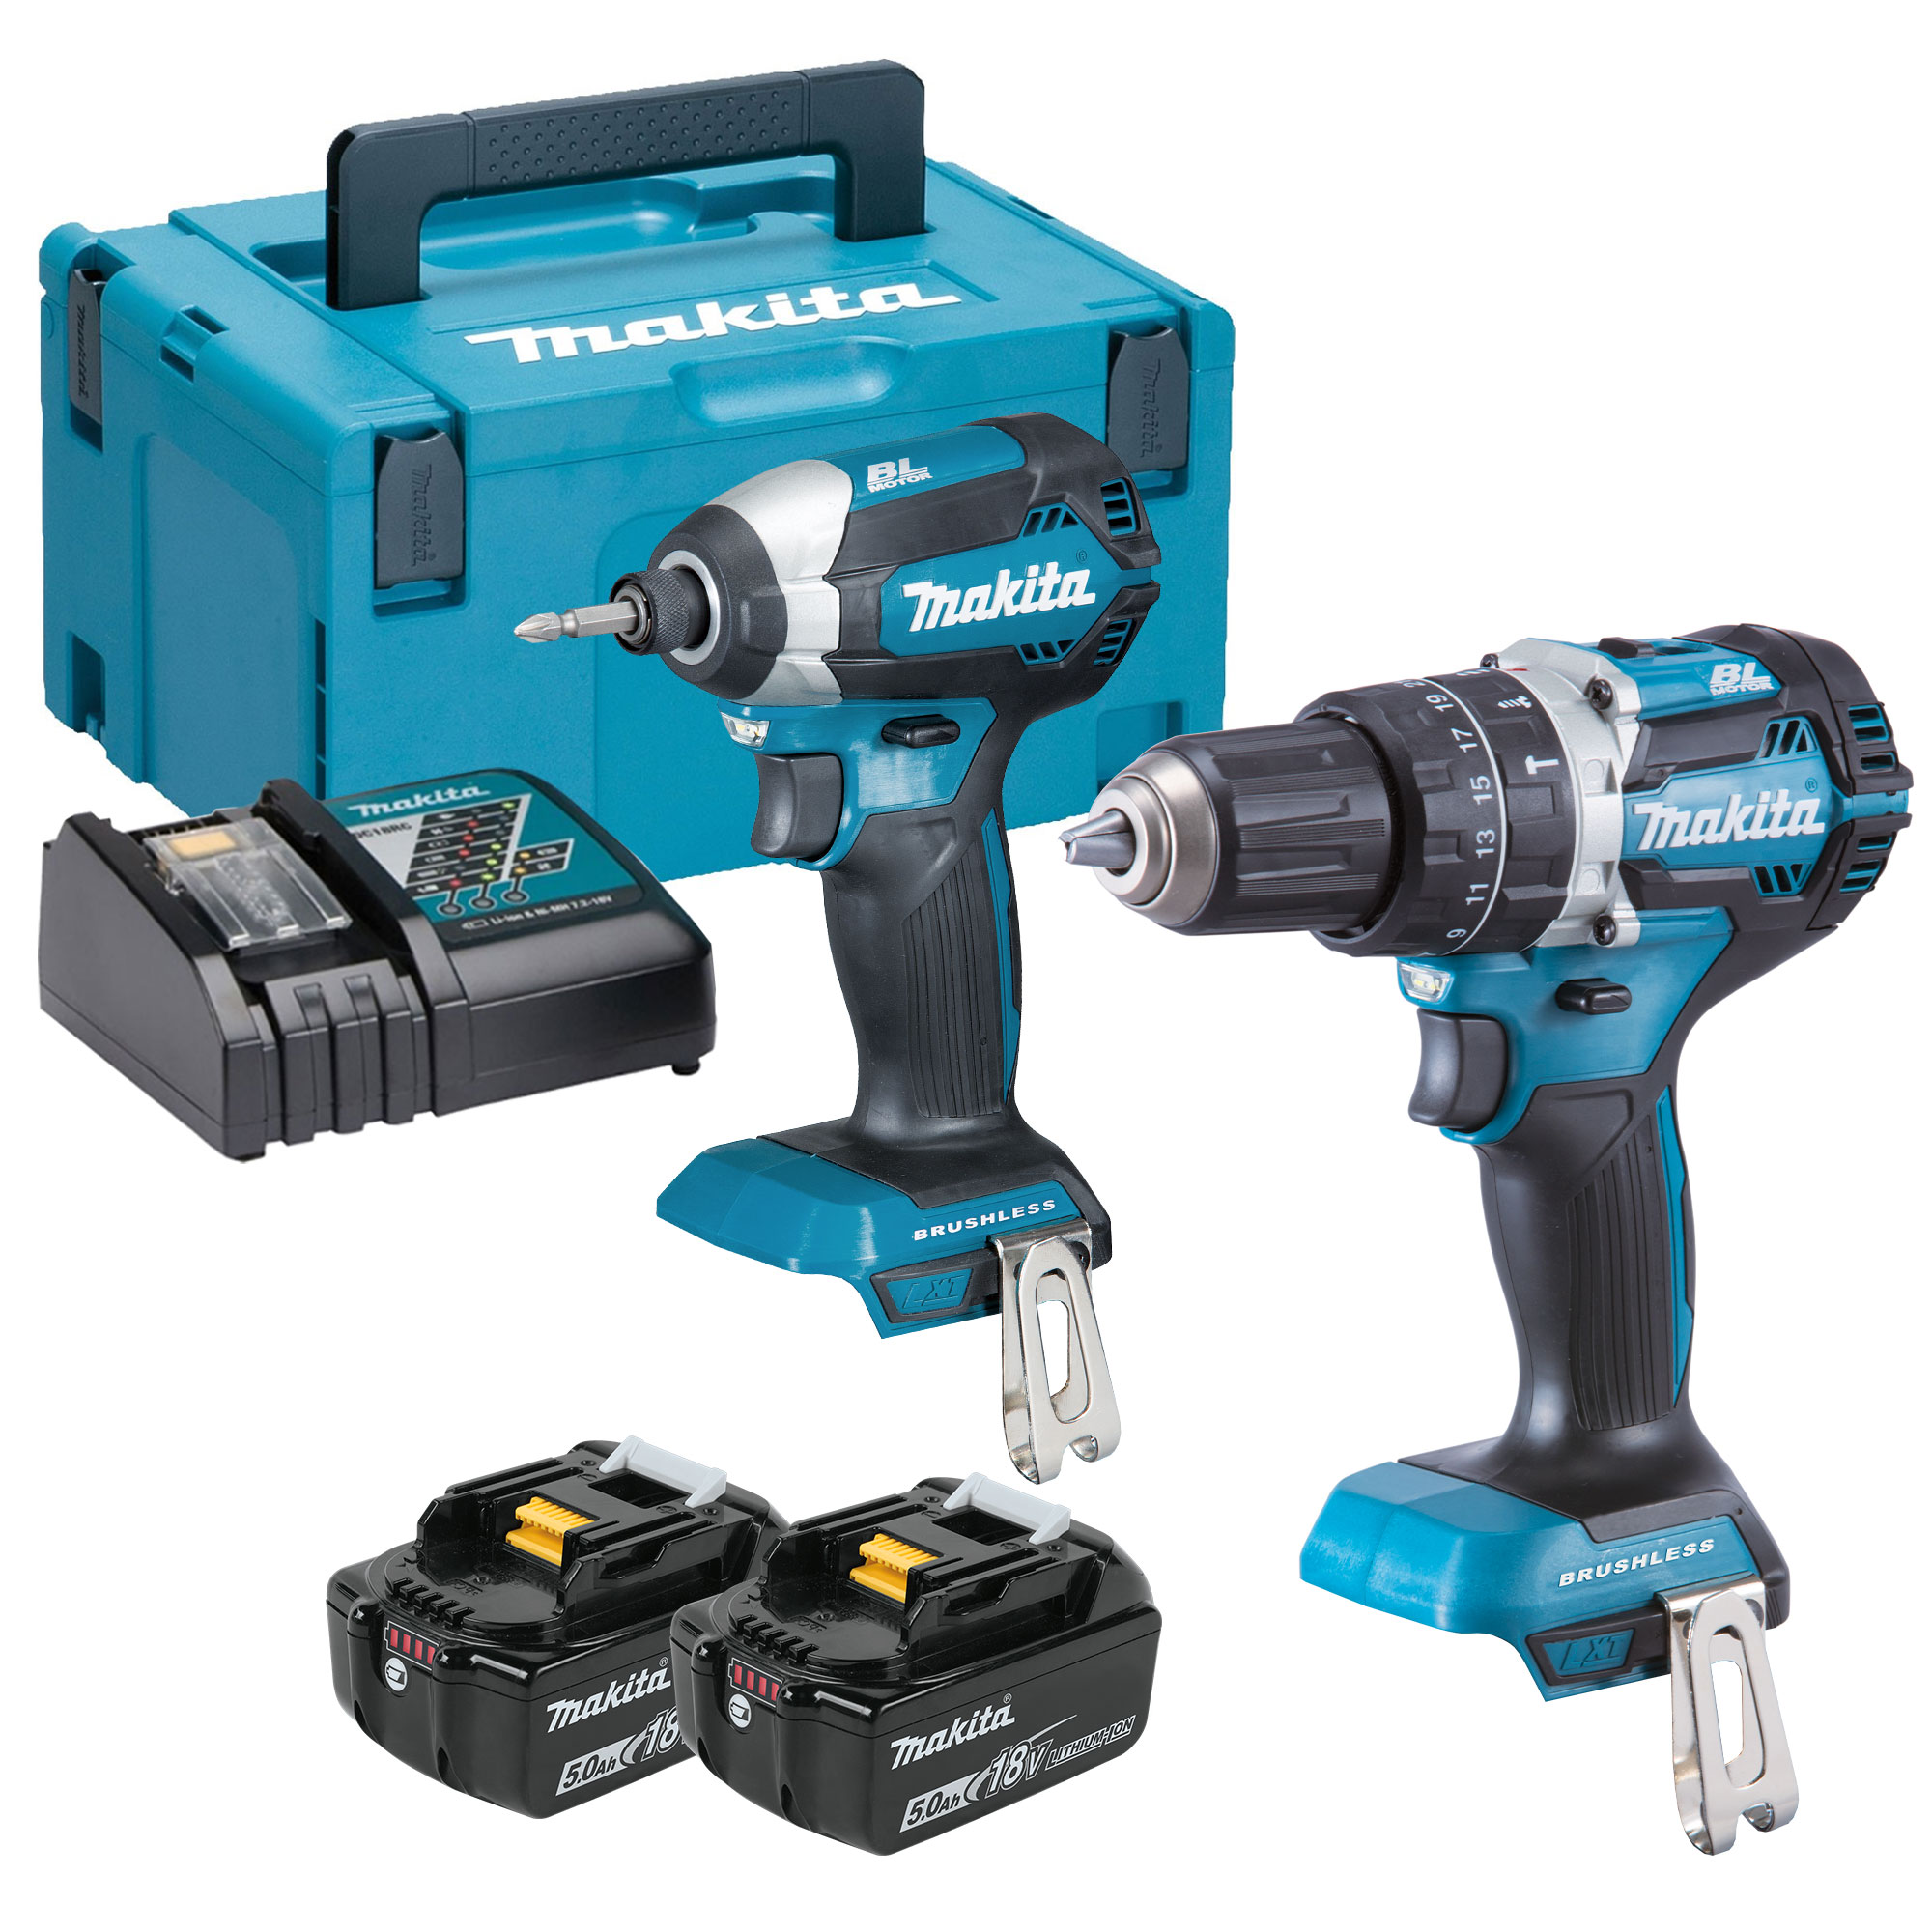 makita dlx2180tj makita 18v li ion 5 0ah brushless 2 piece kit. Black Bedroom Furniture Sets. Home Design Ideas